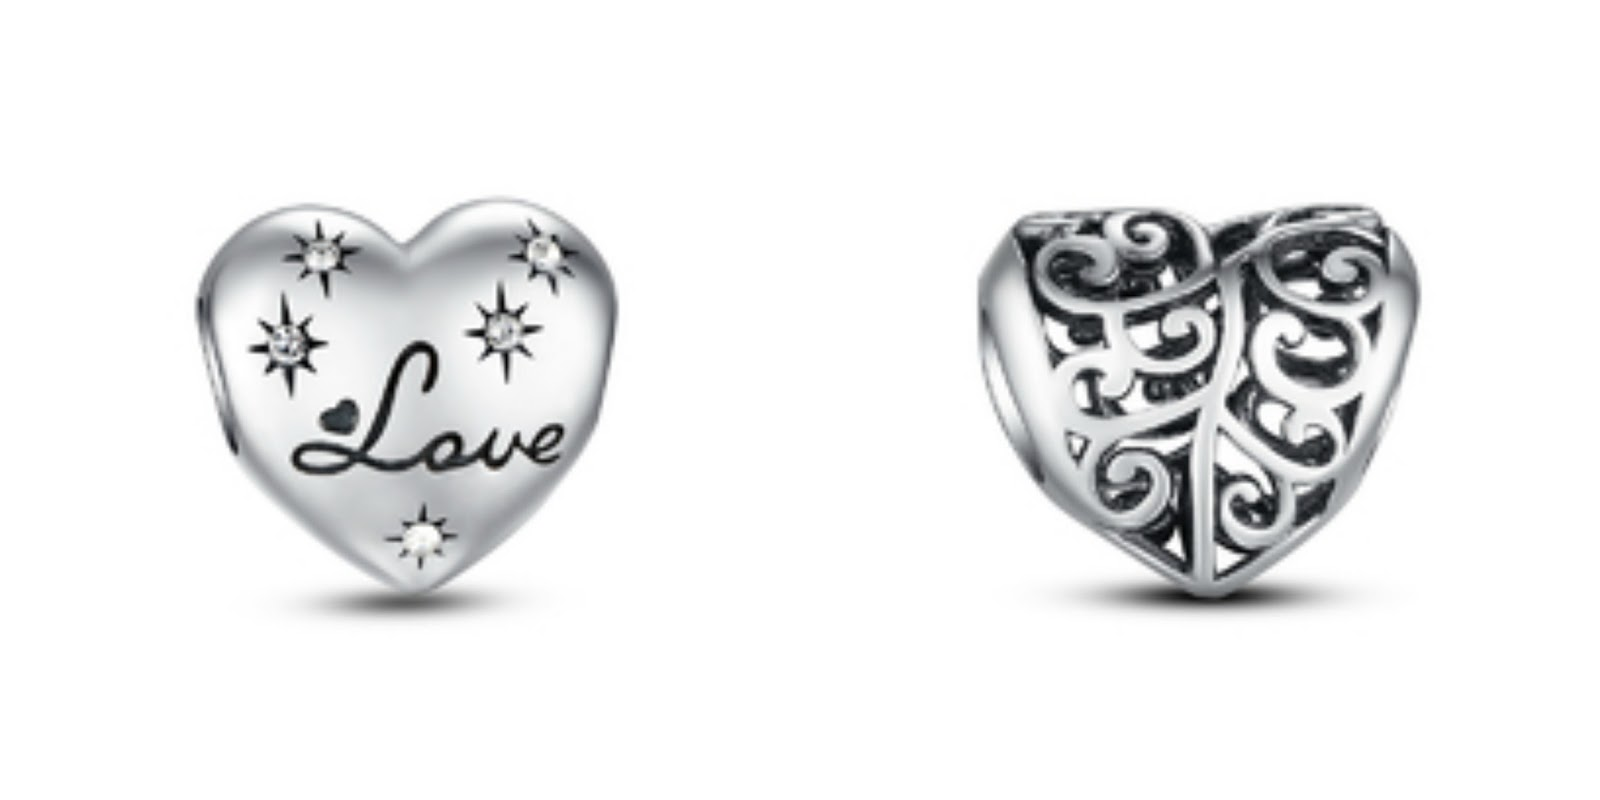 glamulet valentine´s diy contest #glamulet isabella´s choice charms